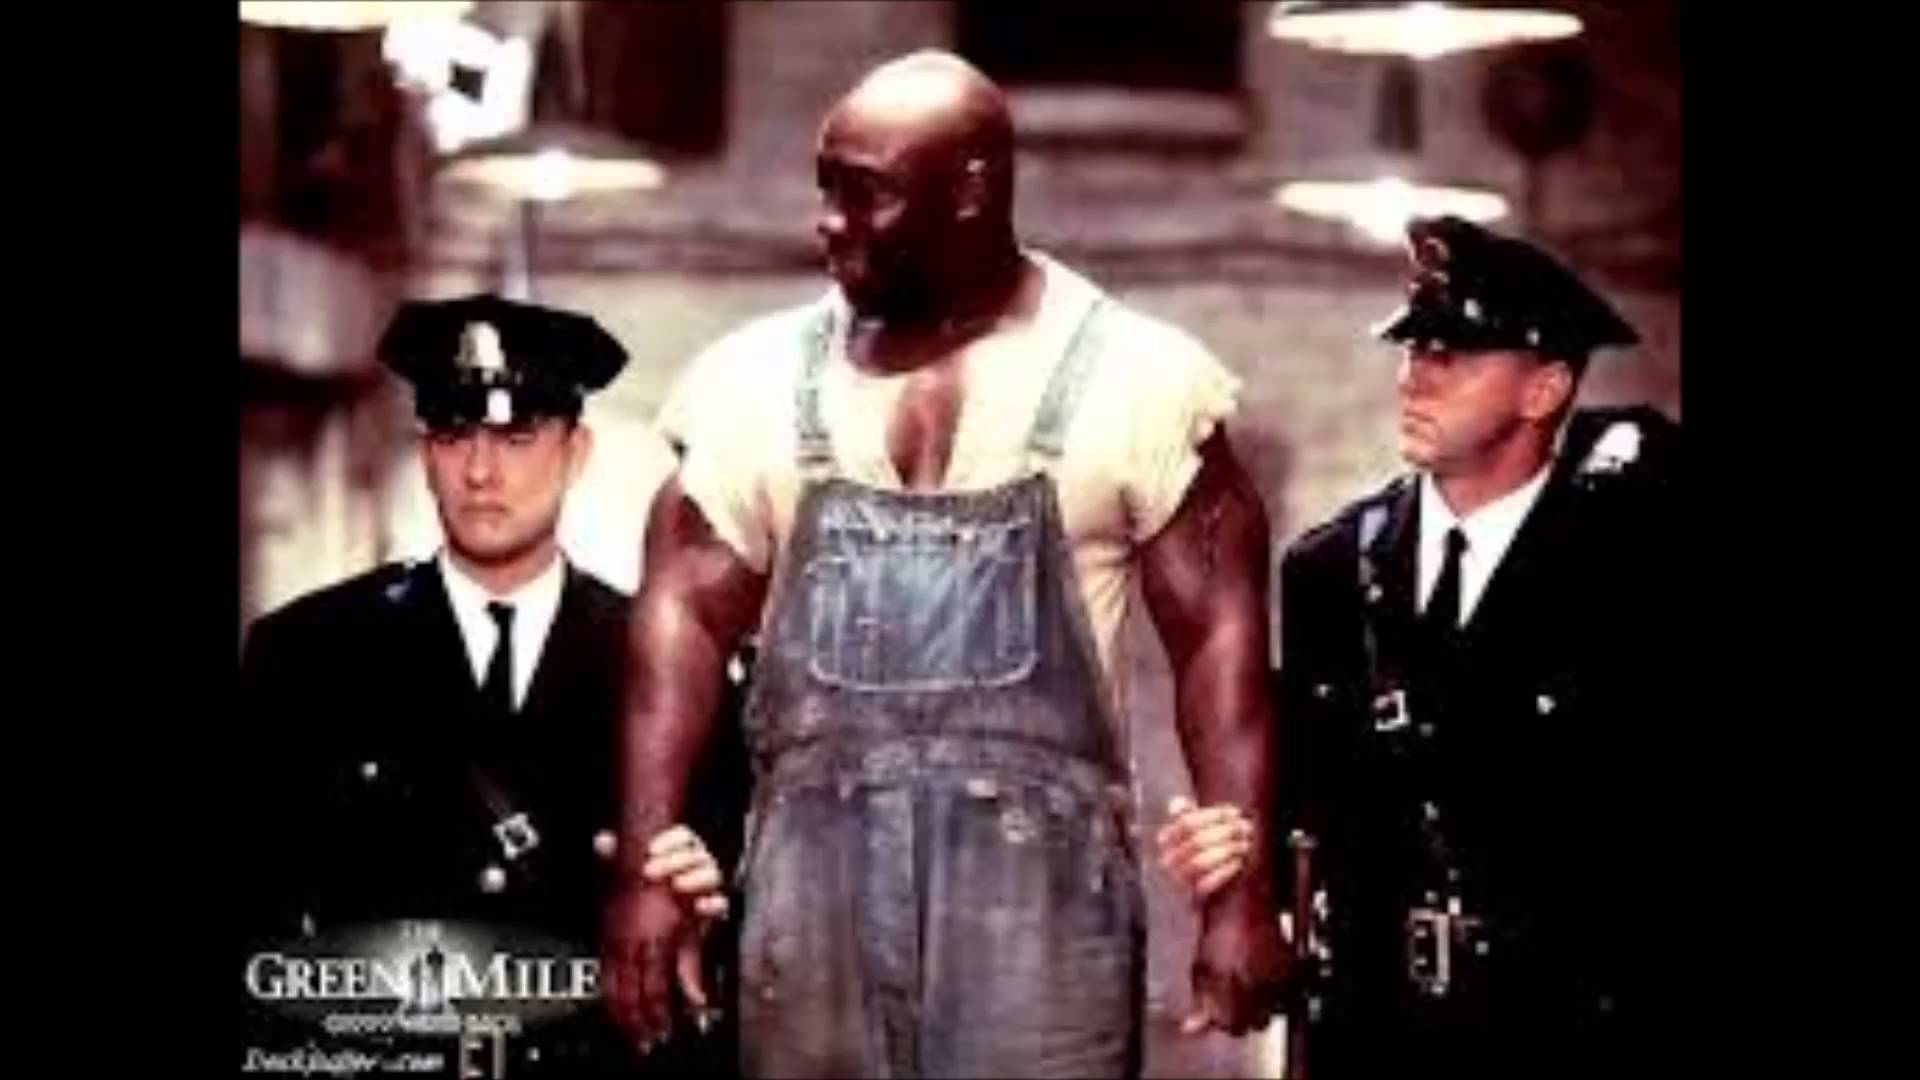 The Green Mile Book Trailer